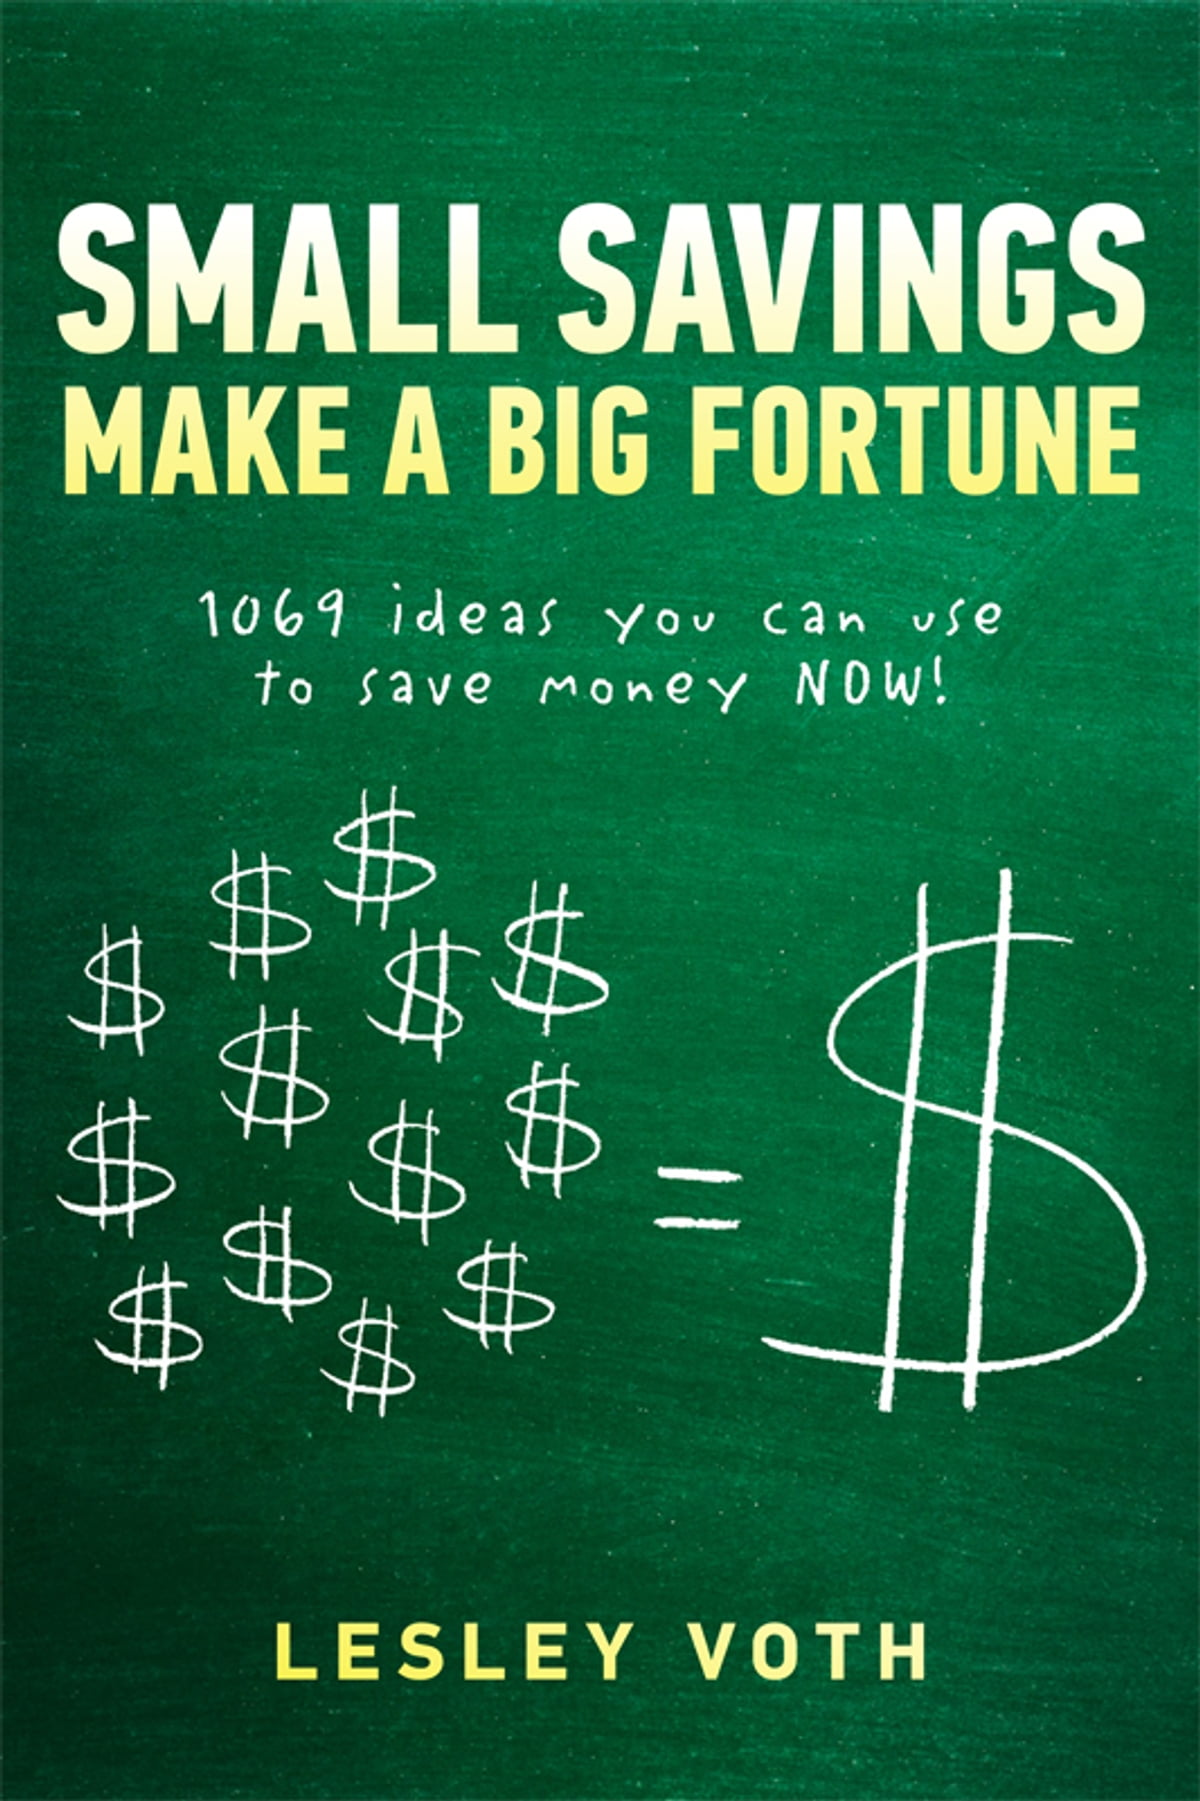 Small Savings Make a Big Fortune eBook by Lesley Voth - 9781618428233 |  Rakuten Kobo